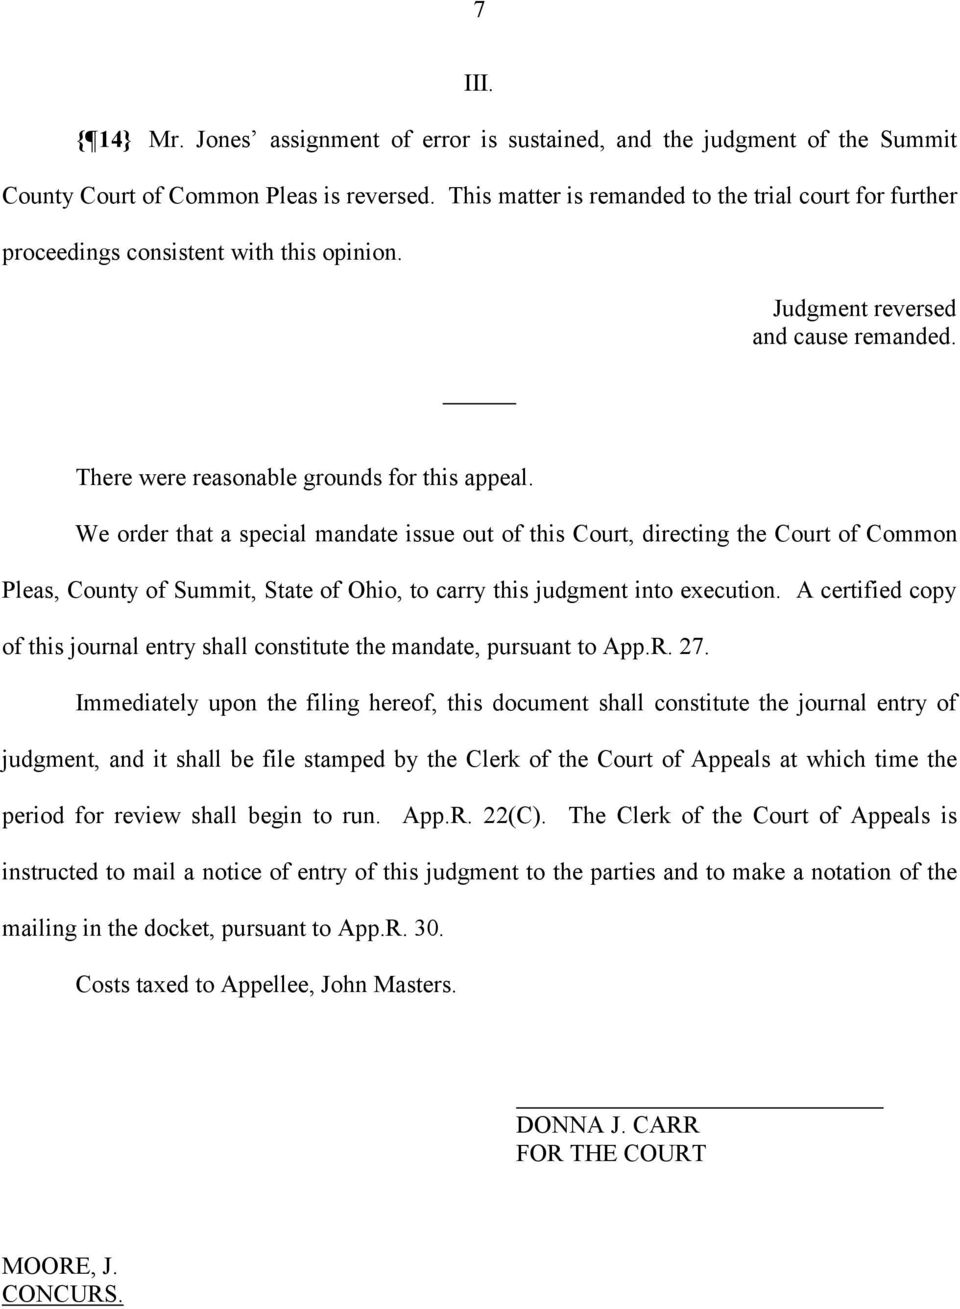 We order that a special mandate issue out of this Court, directing the Court of Common Pleas, County of Summit, State of Ohio, to carry this judgment into execution.